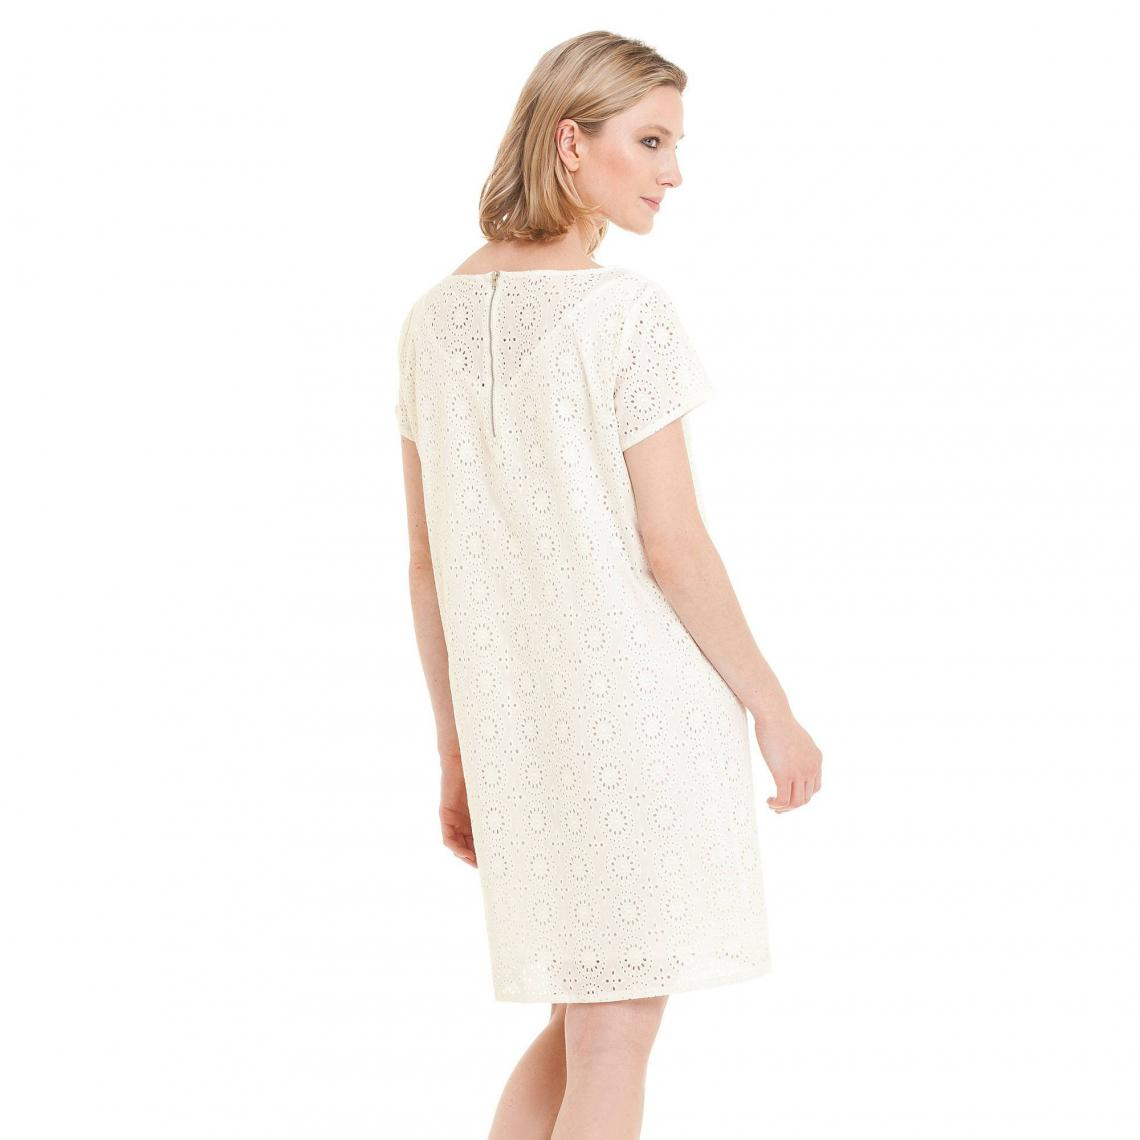 Robe courte manches courtes broderie anglaise femme - Blanc  559c7e0820c